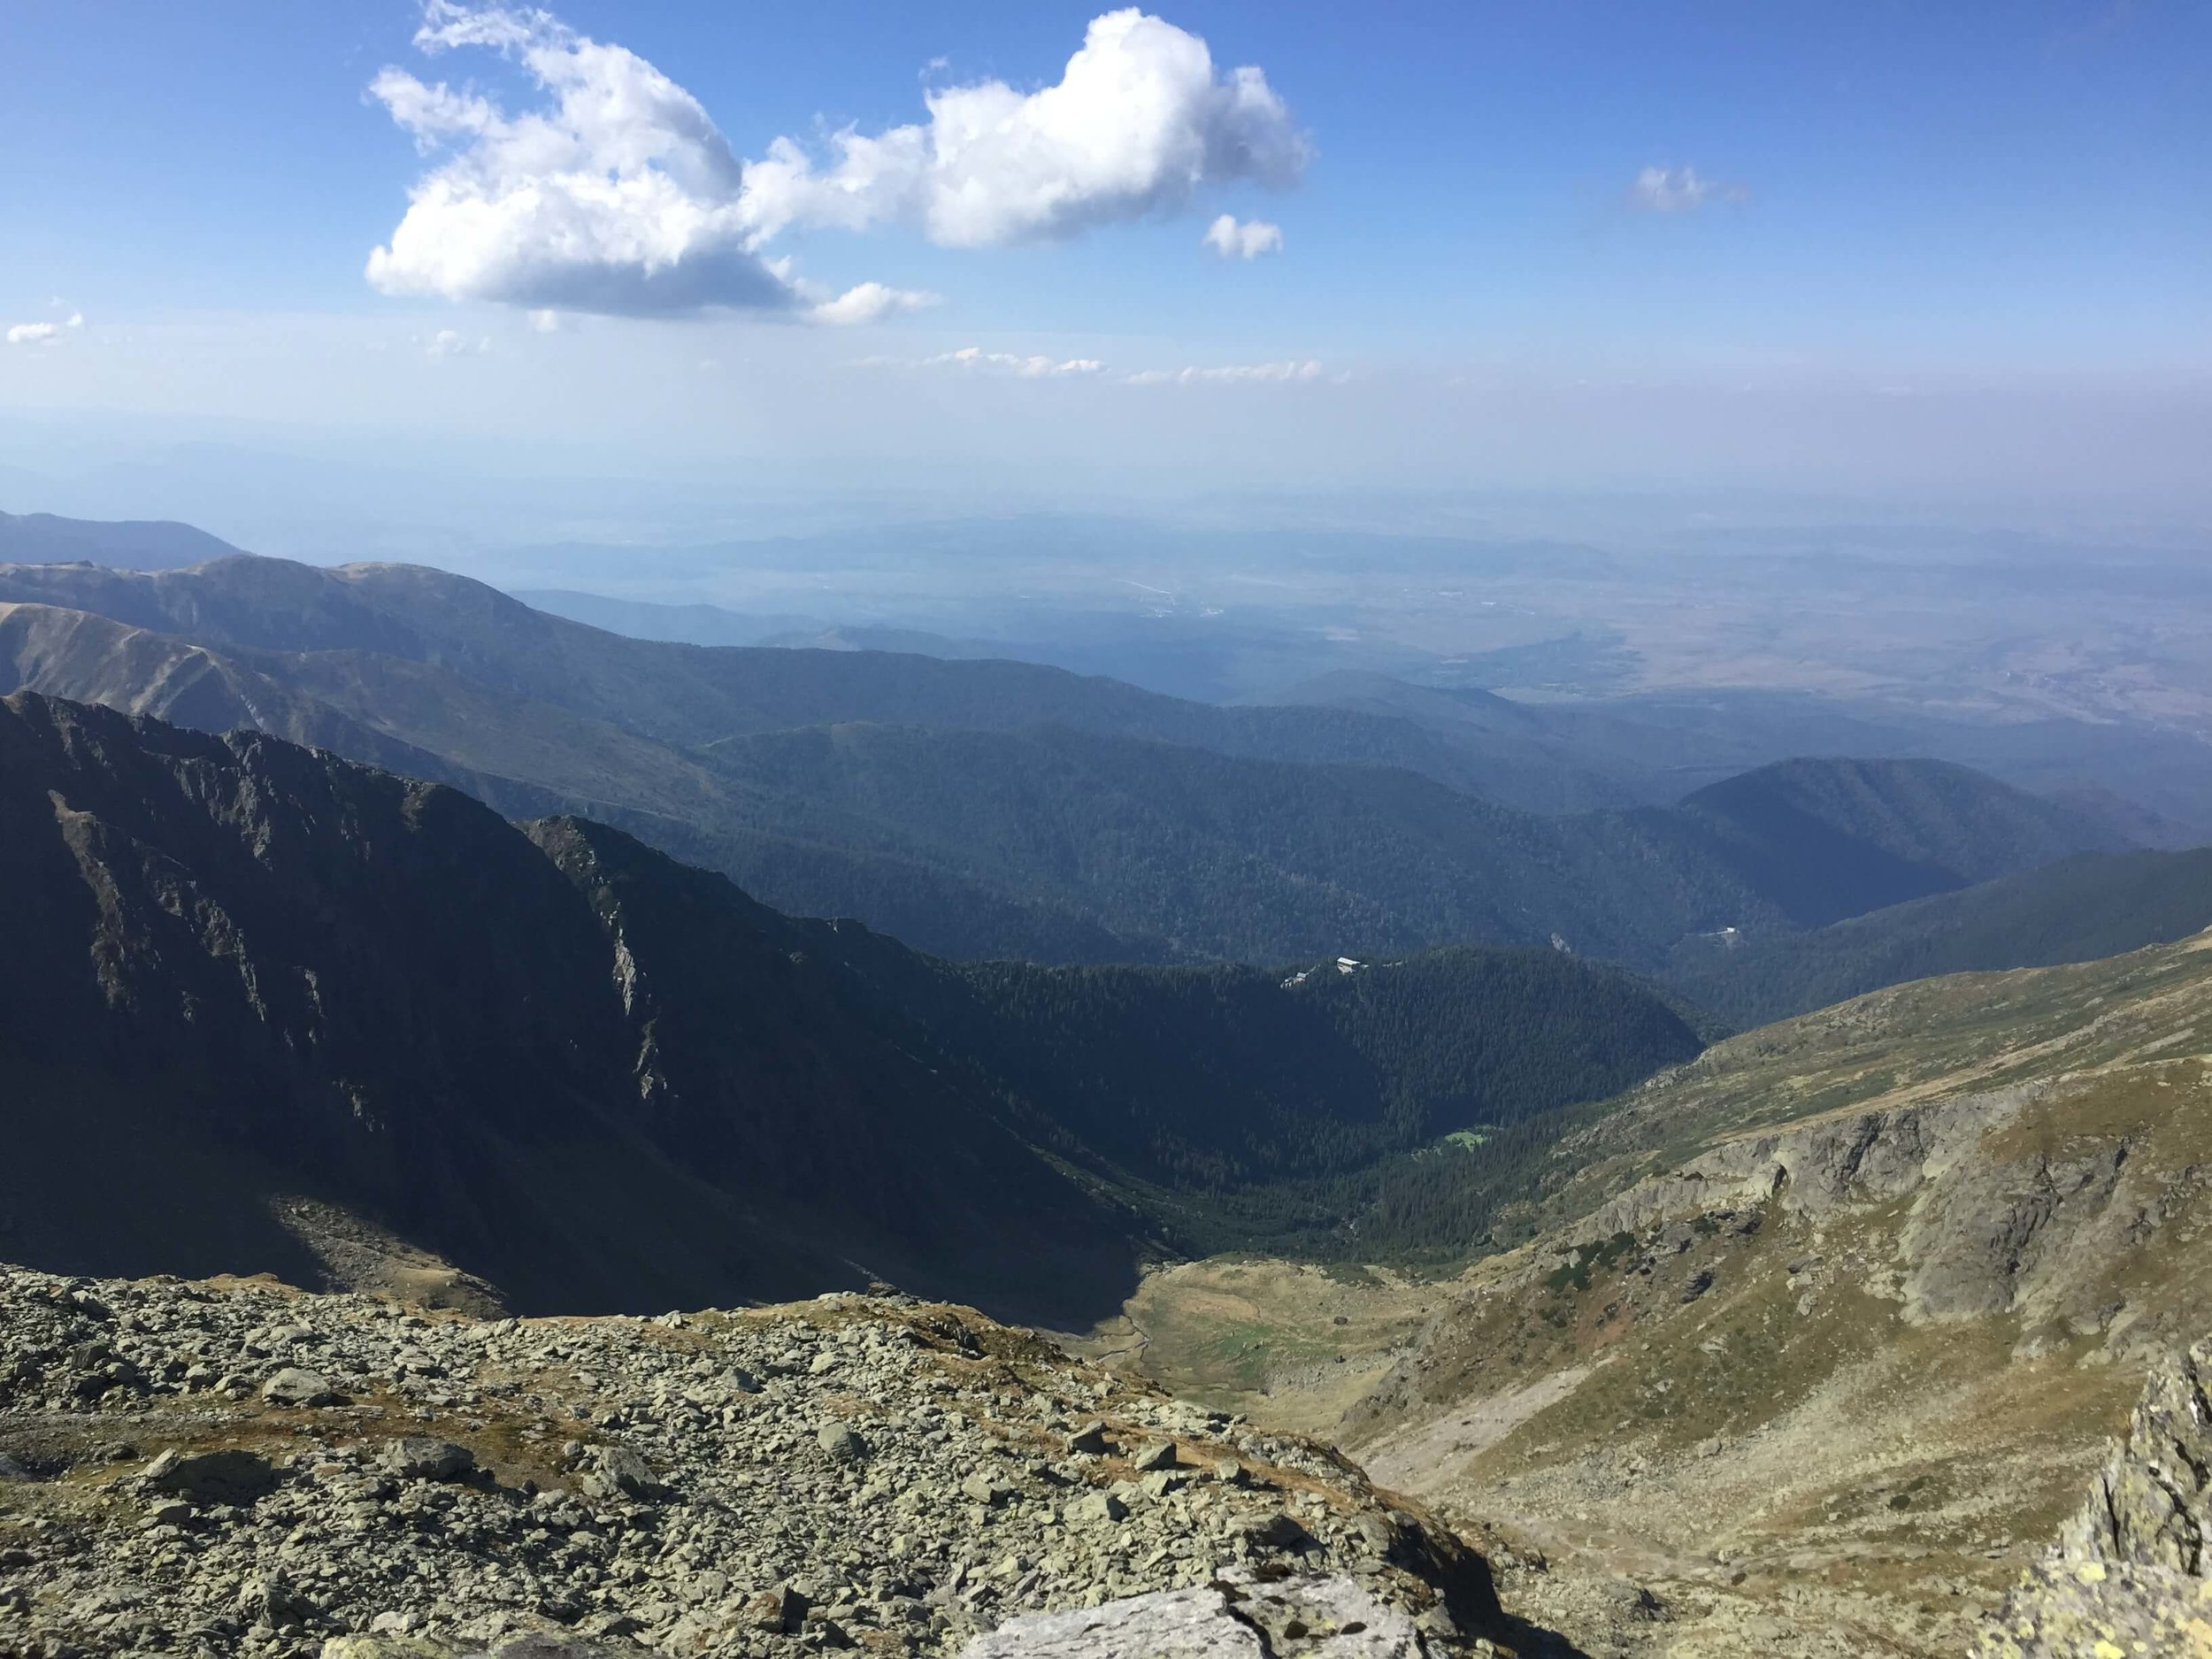 In the center of this picture you can see a white dot on the first ridge, which is the cabin hikers stay at on the way to Negoiu.